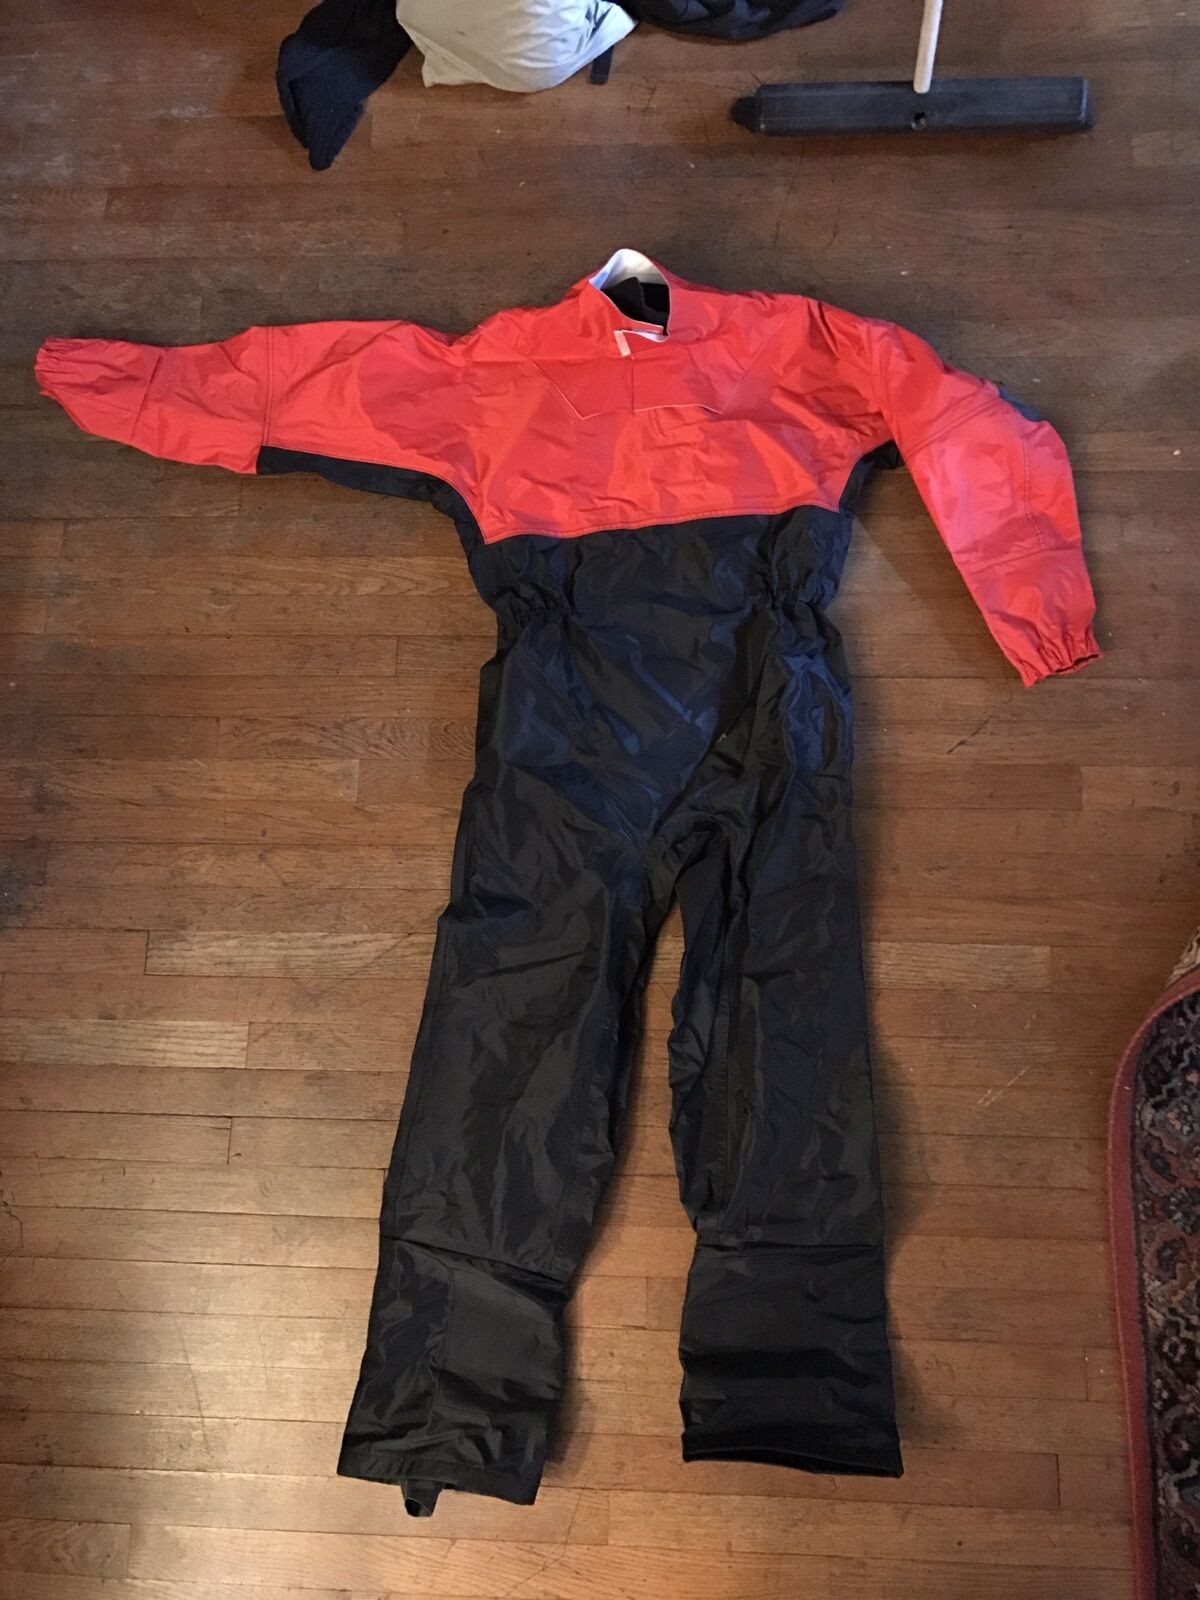 New Drysuit AirBergy Comfortable ,Size Small  height 5' 3 -5' 6